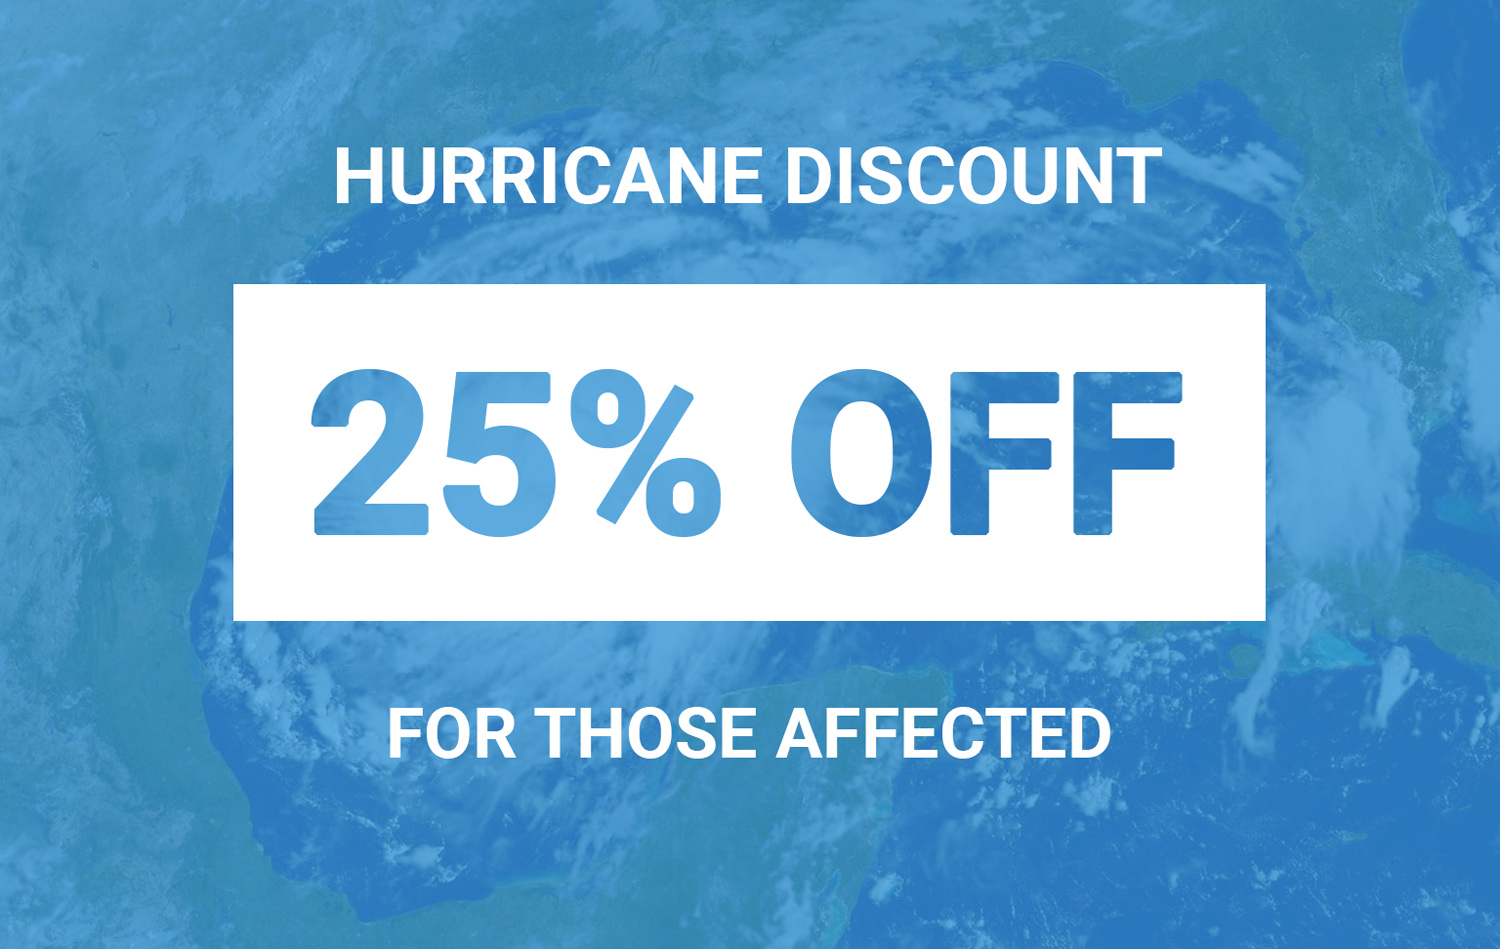 hurricane data recovery discount coupon 25%